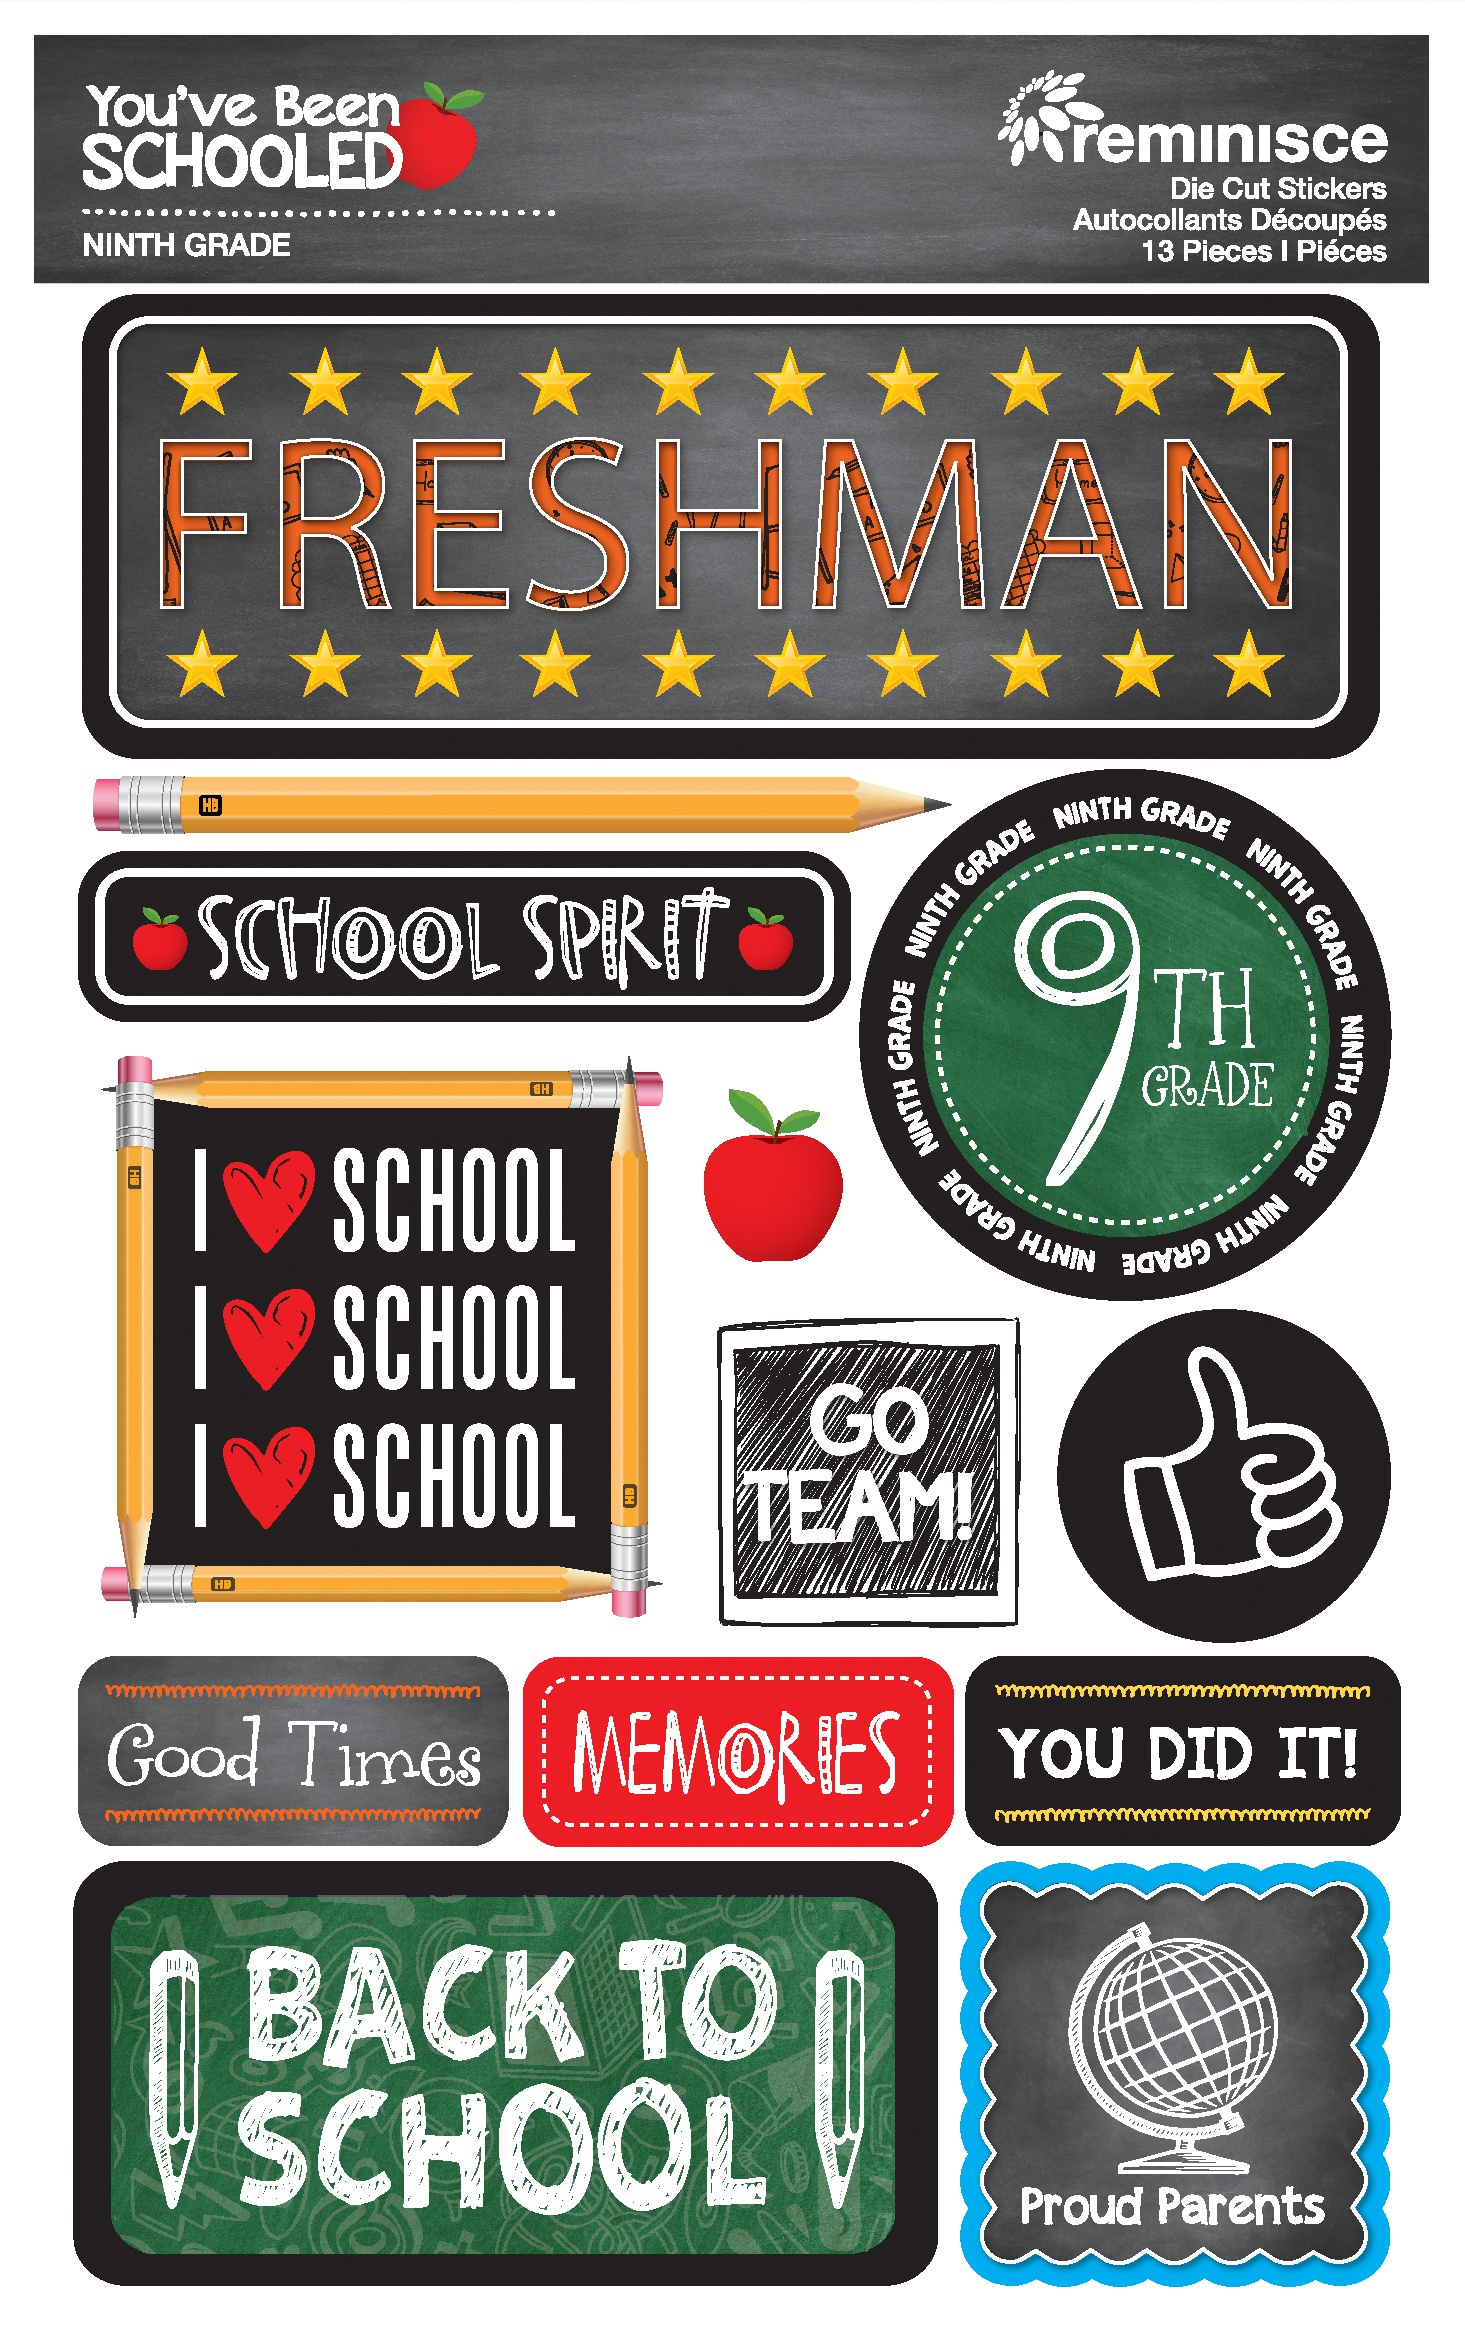 Reminisce You've Been Schooled -  9th Grade / Freshman 3D Dimensional Stickers